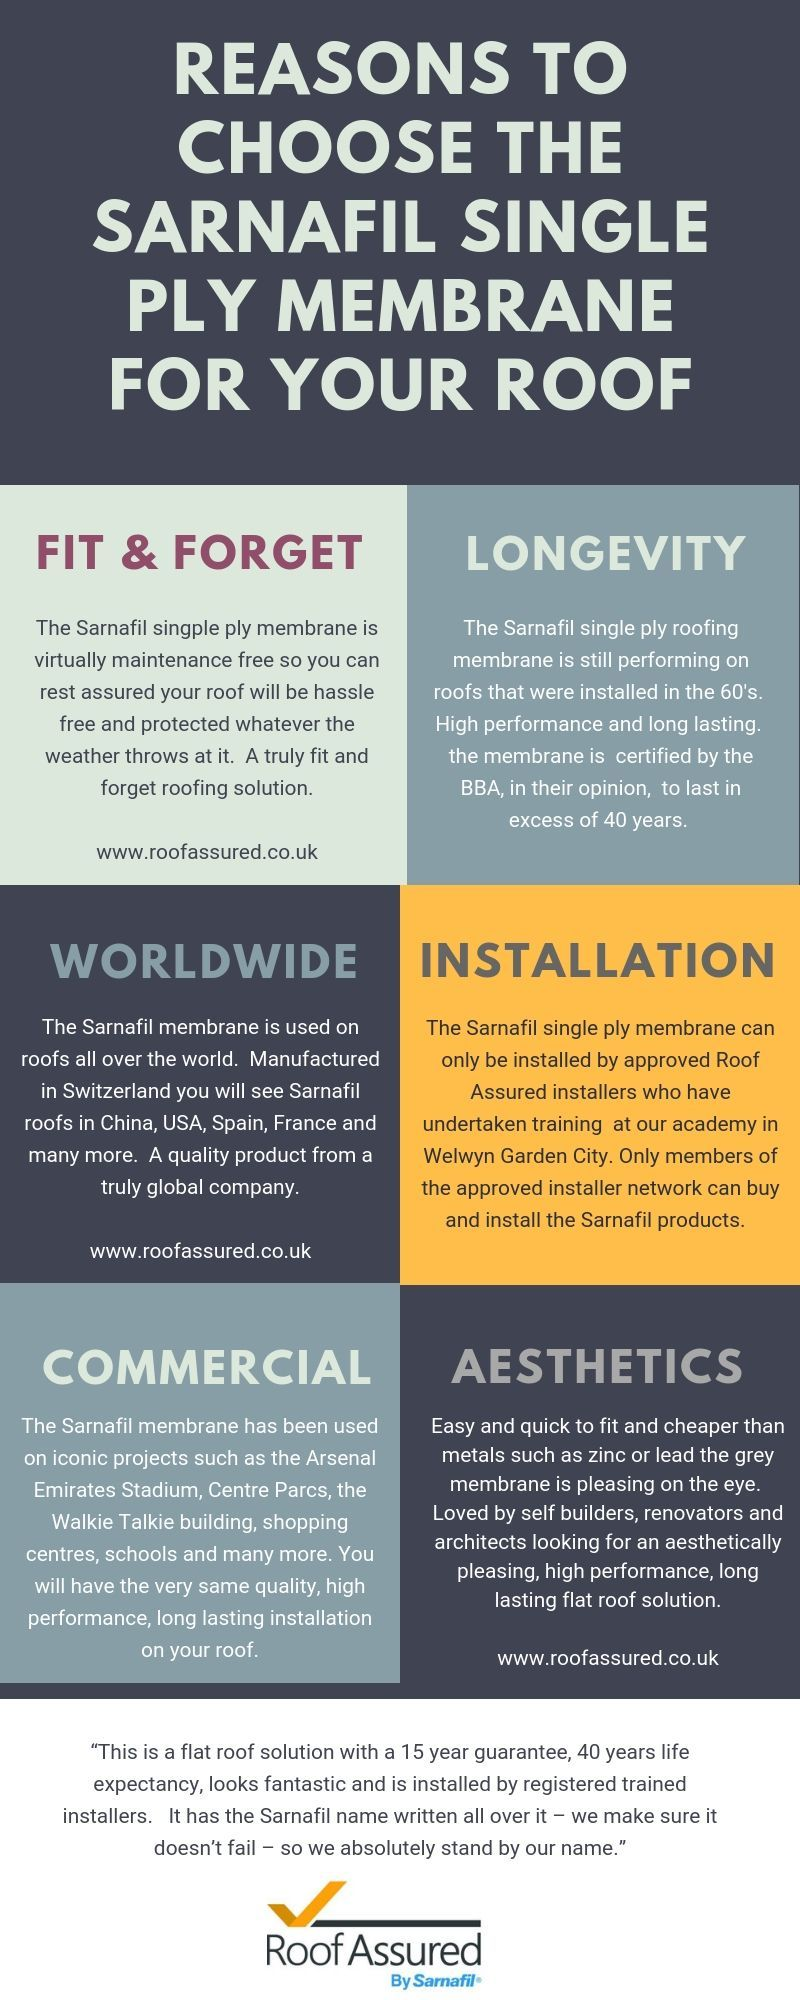 Reasons To Choose The Sarnafil Single Ply Membrane For Your Flat Roof Single Ply Roofing Membrane Flat Roof